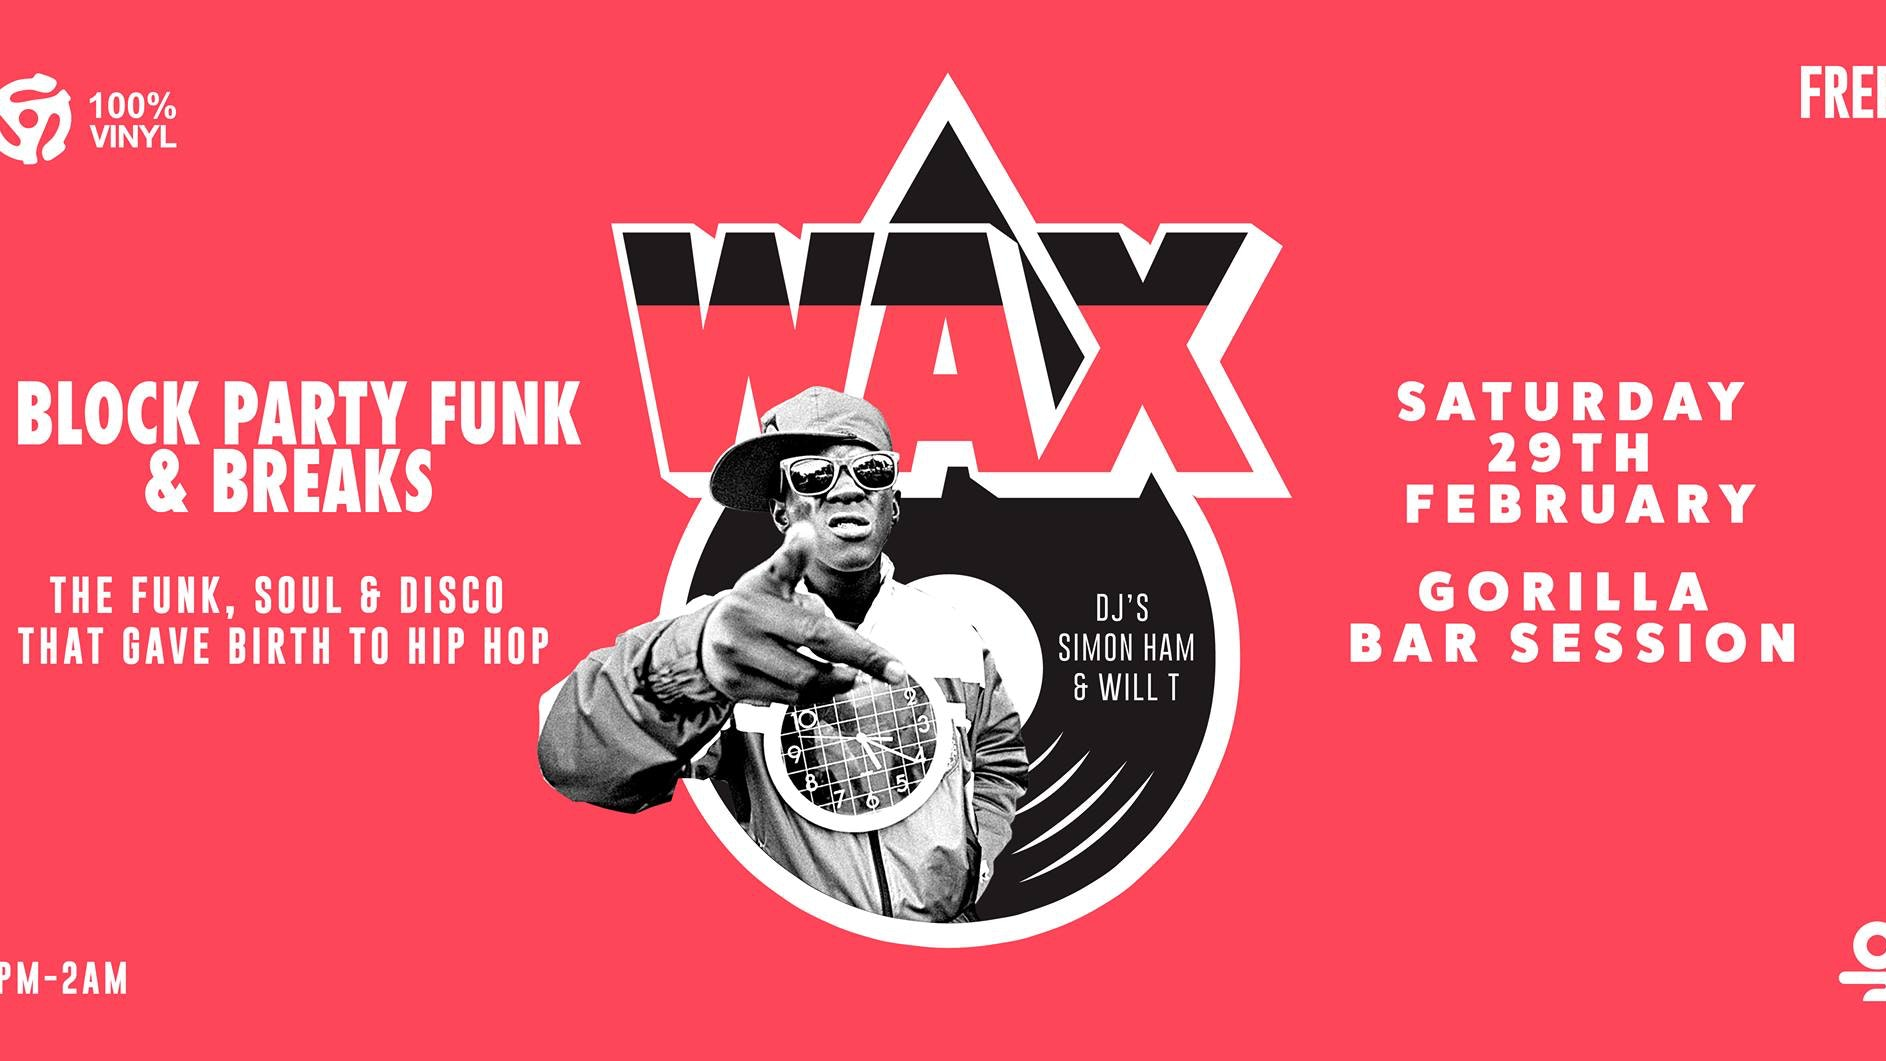 WAX: Block Party Funk & Breaks